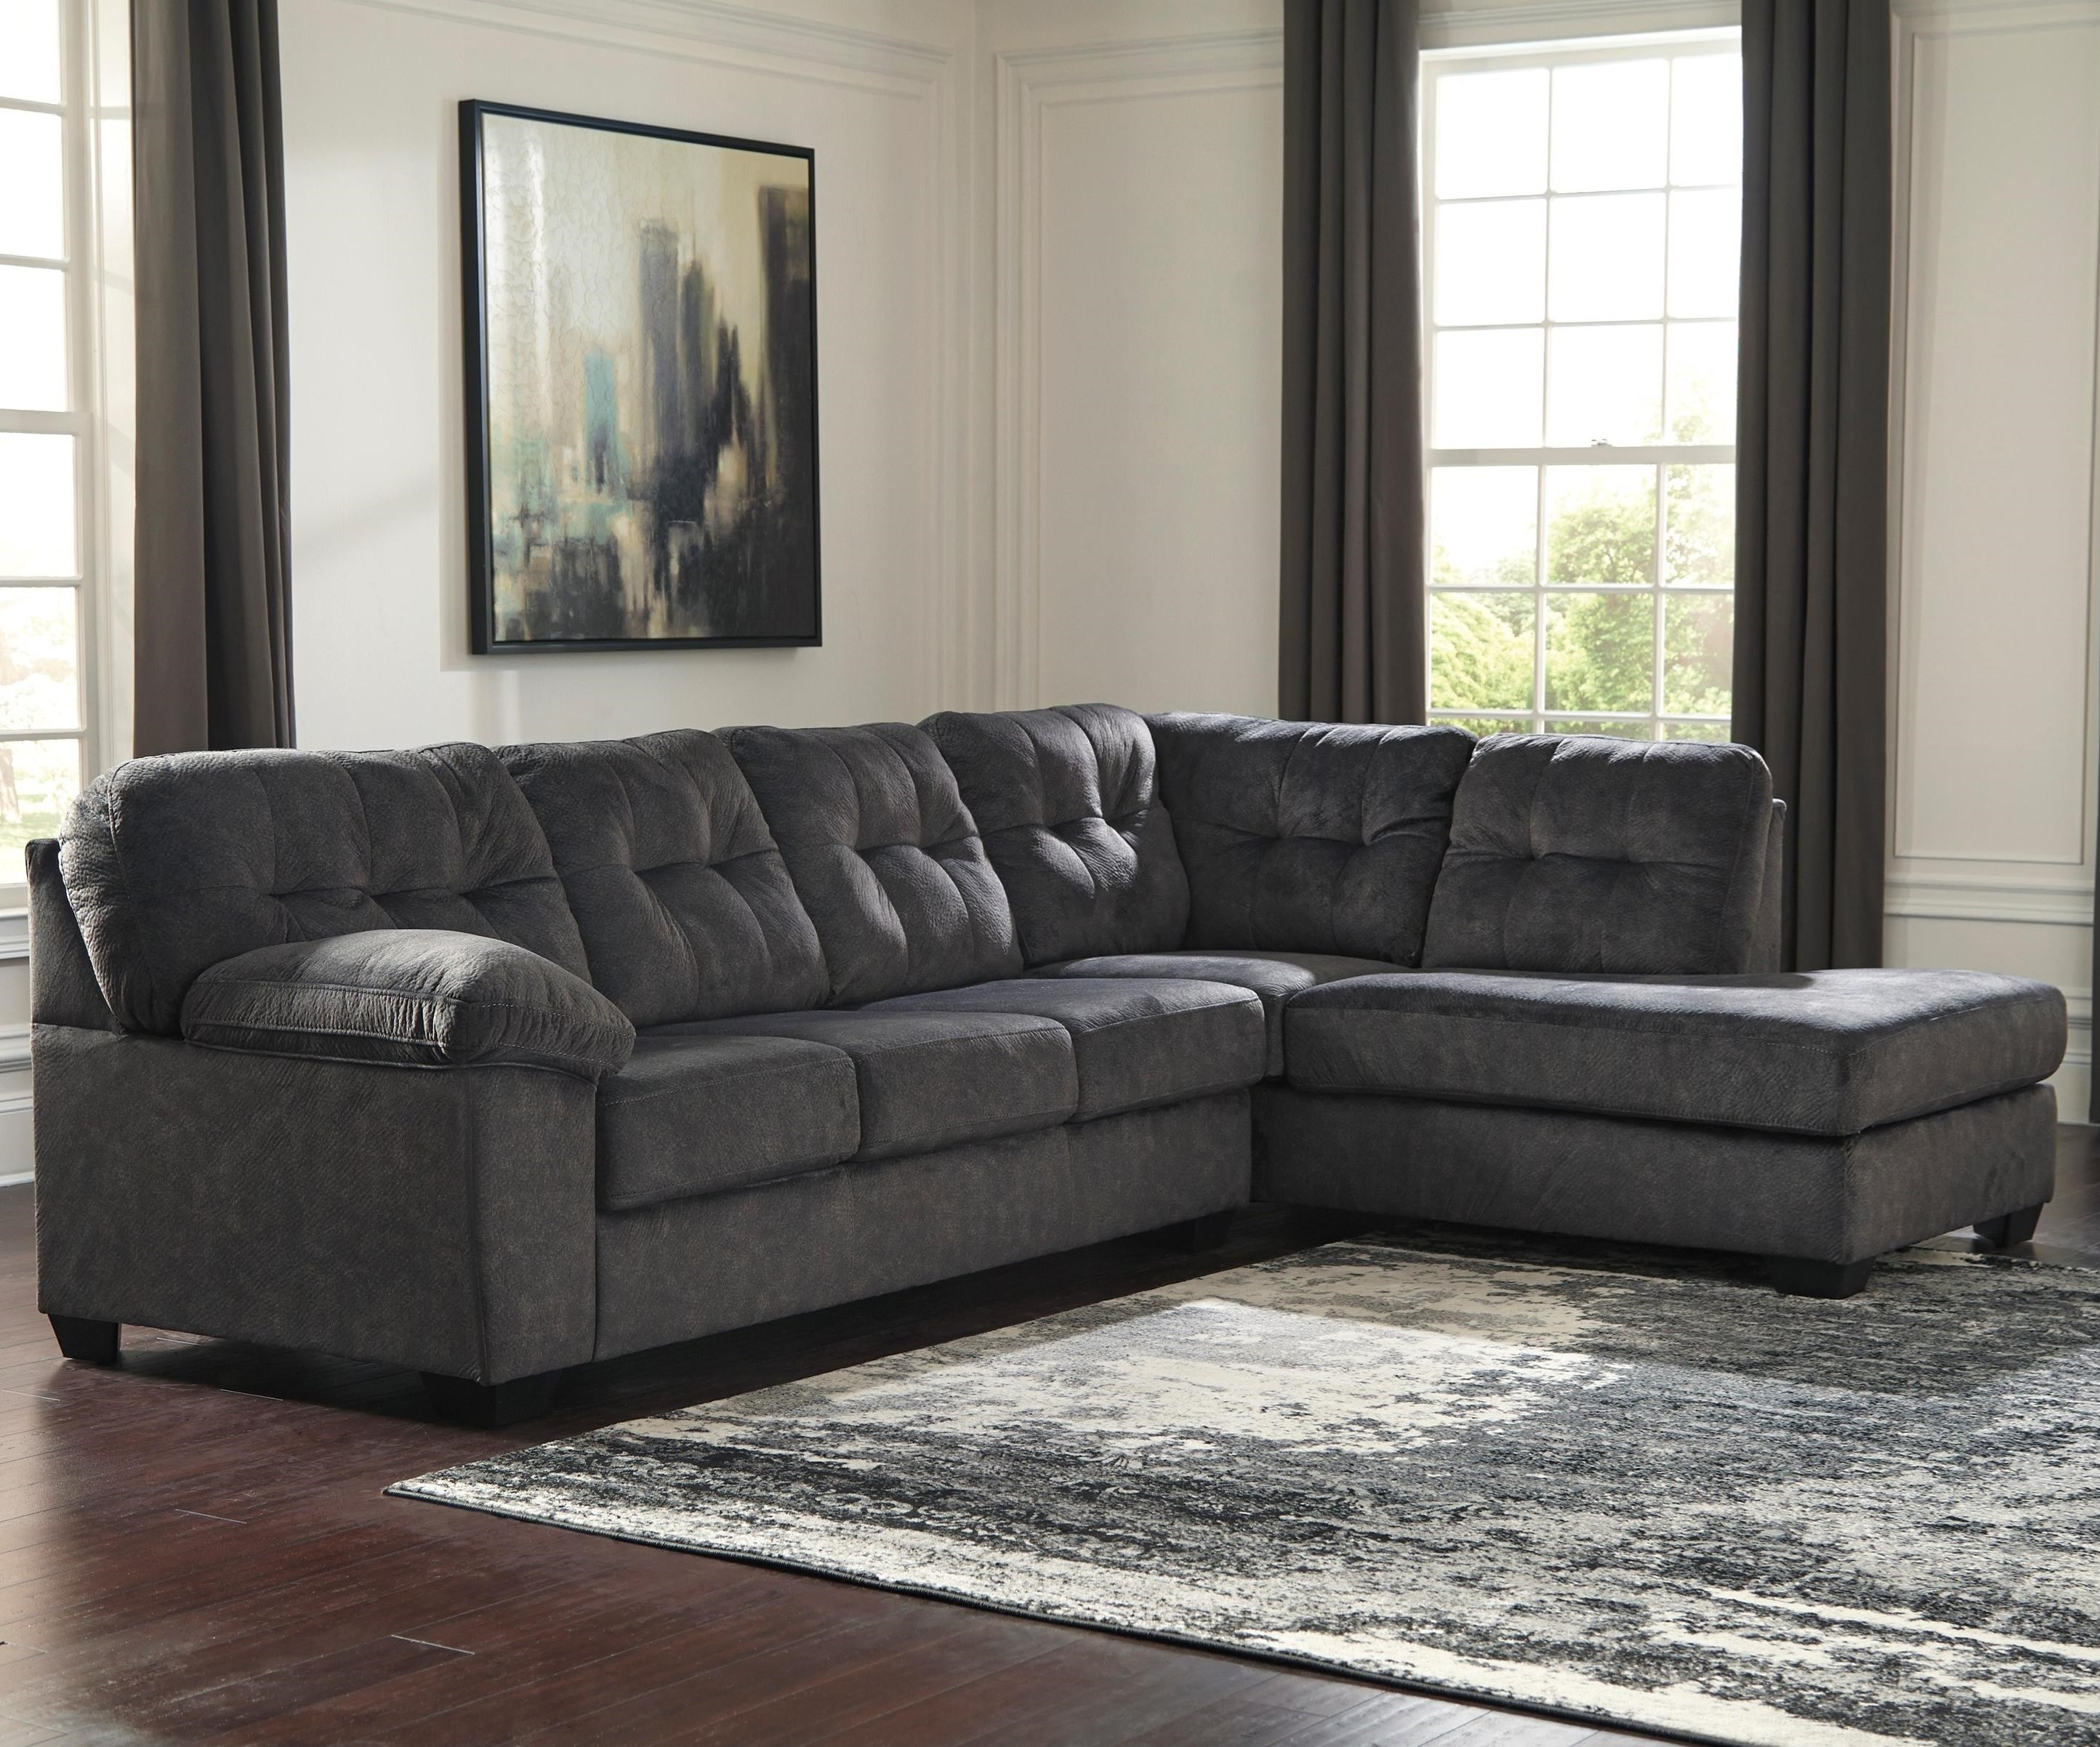 Accrington Sectional with Right Chaise by Signature Design by Ashley at Pilgrim Furniture City